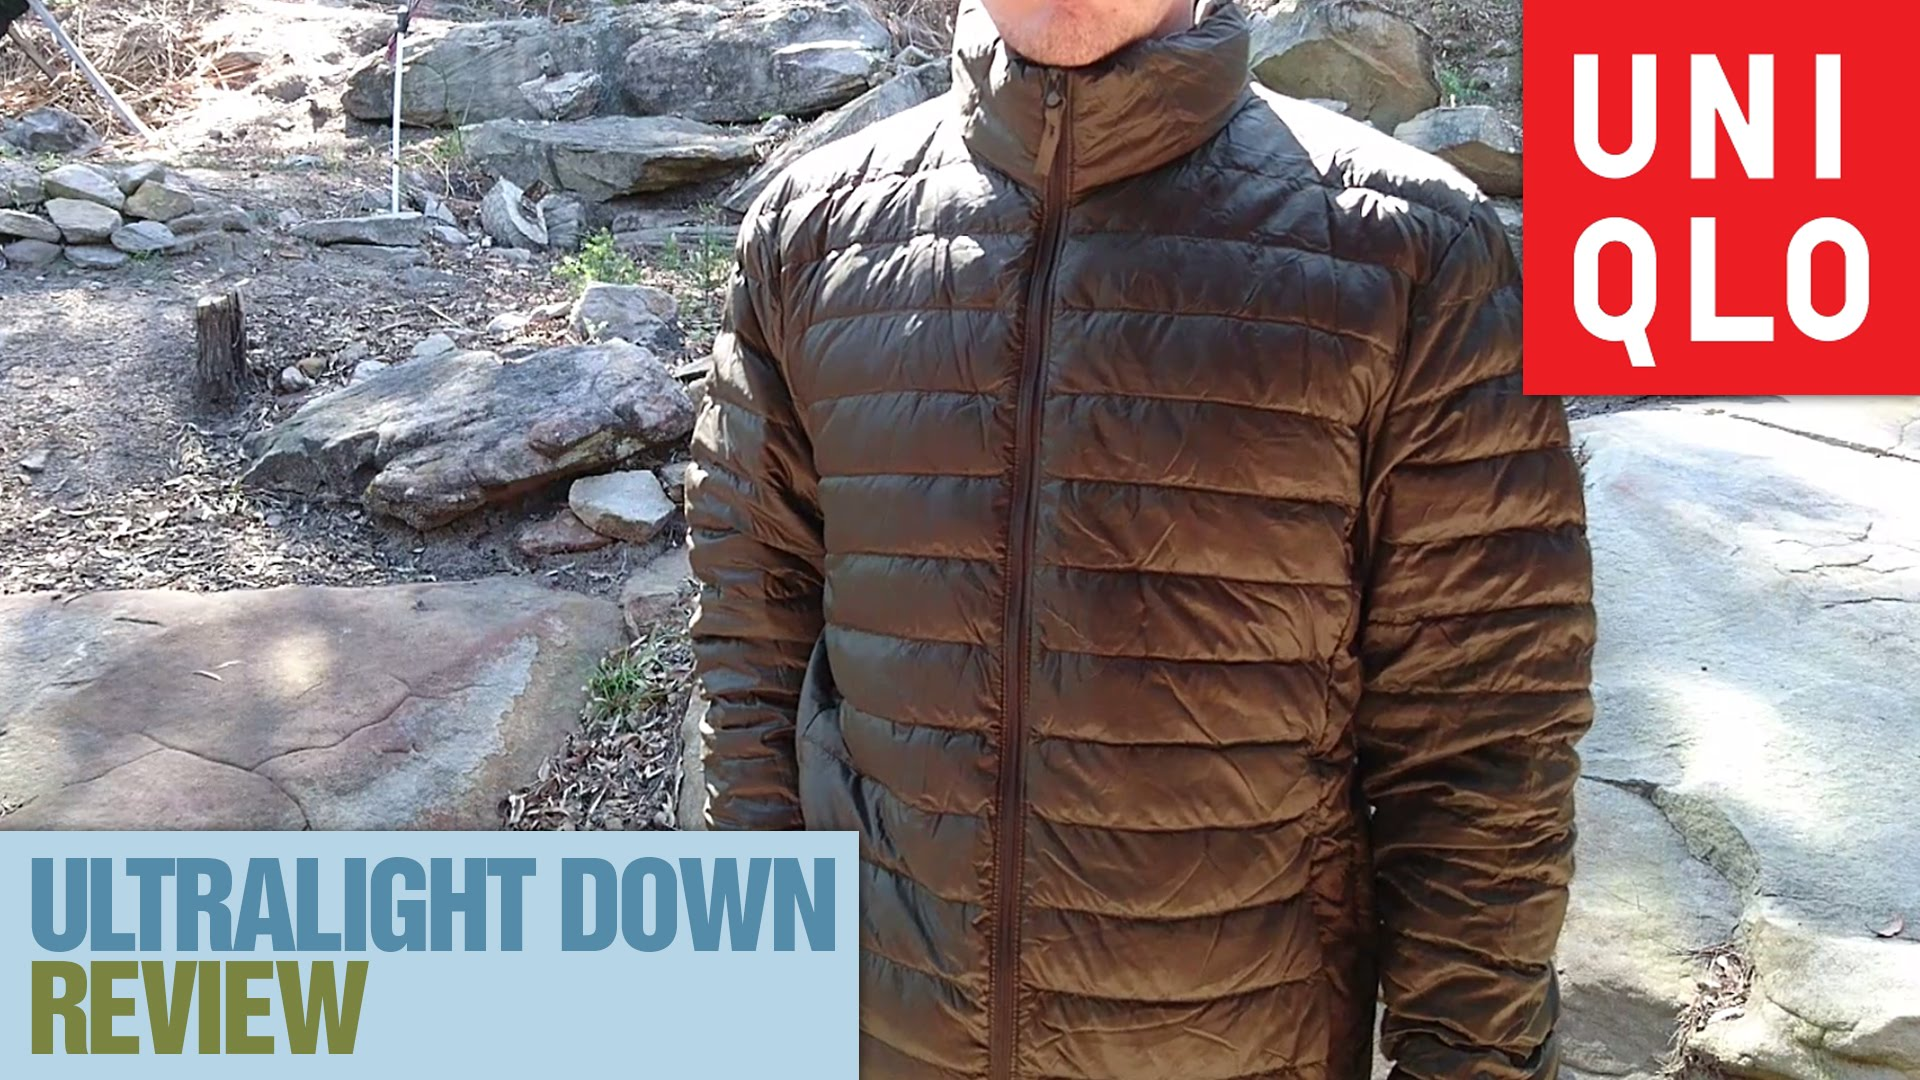 uniqlo ultralight down jacket review packing lite. Black Bedroom Furniture Sets. Home Design Ideas